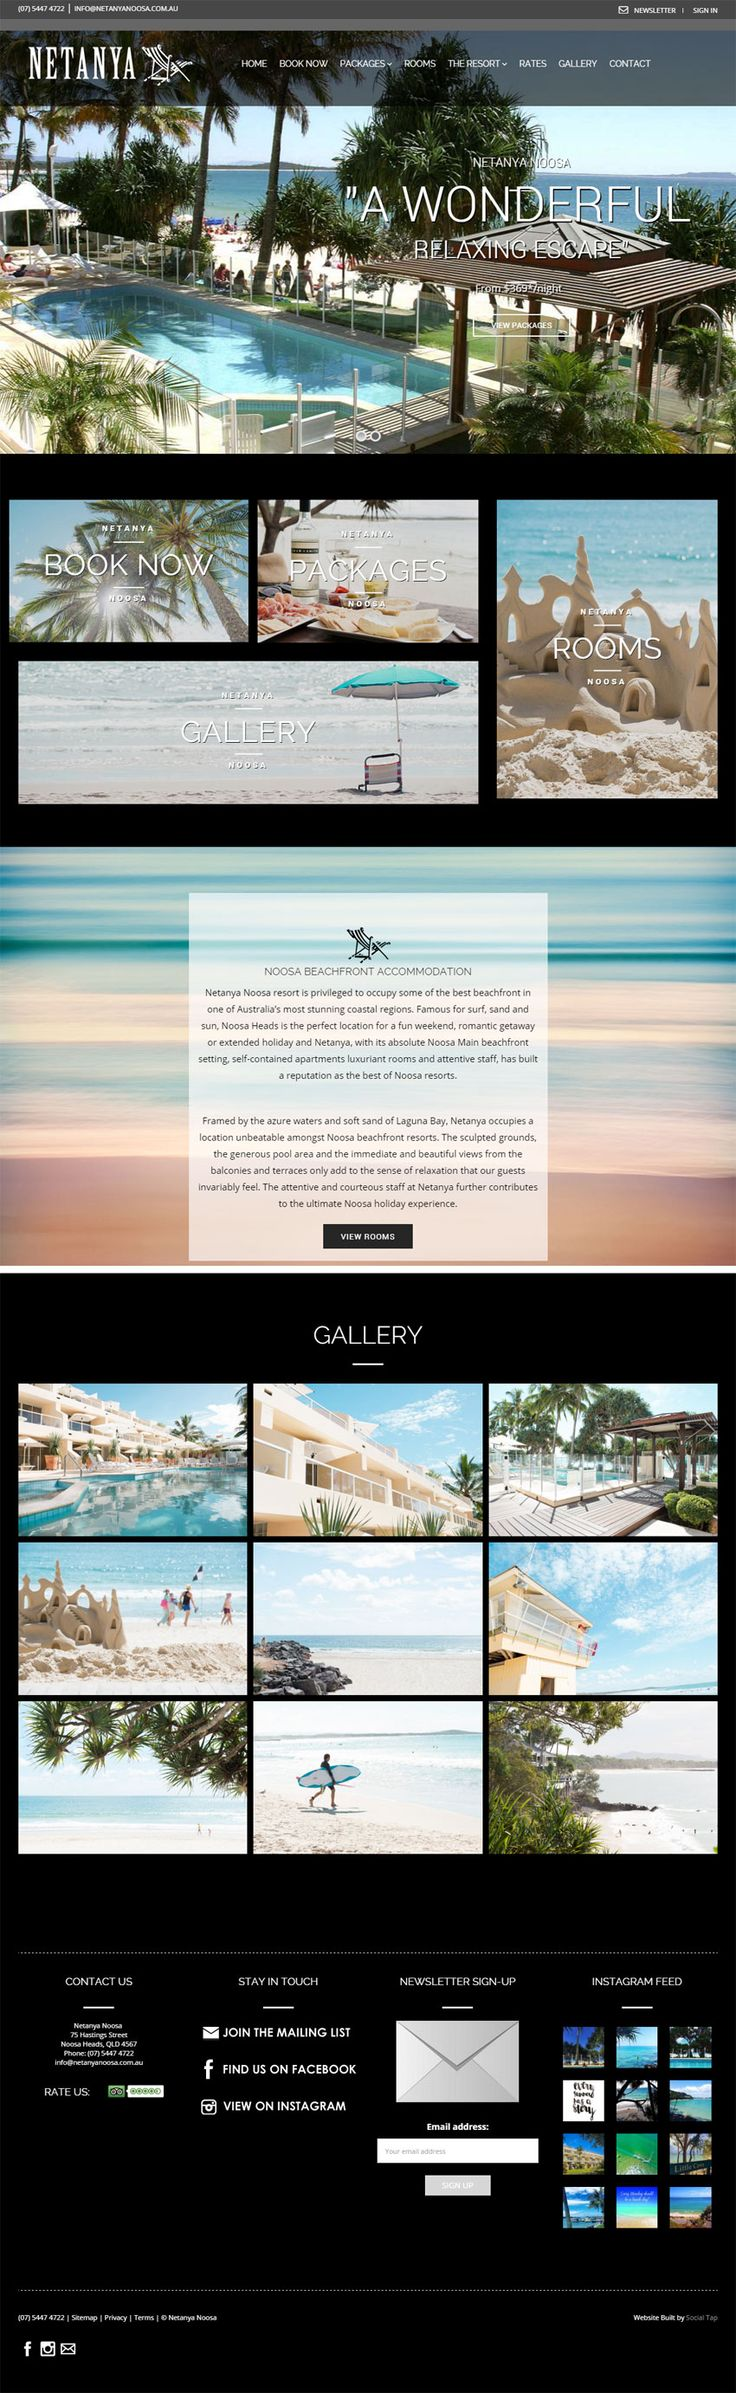 Website design for Netanya Resort and Accommodation in Noosa QLD, Australia. Websites for Hospitality, Tourism, Food & Wine designed & built by SocialTap.com.au